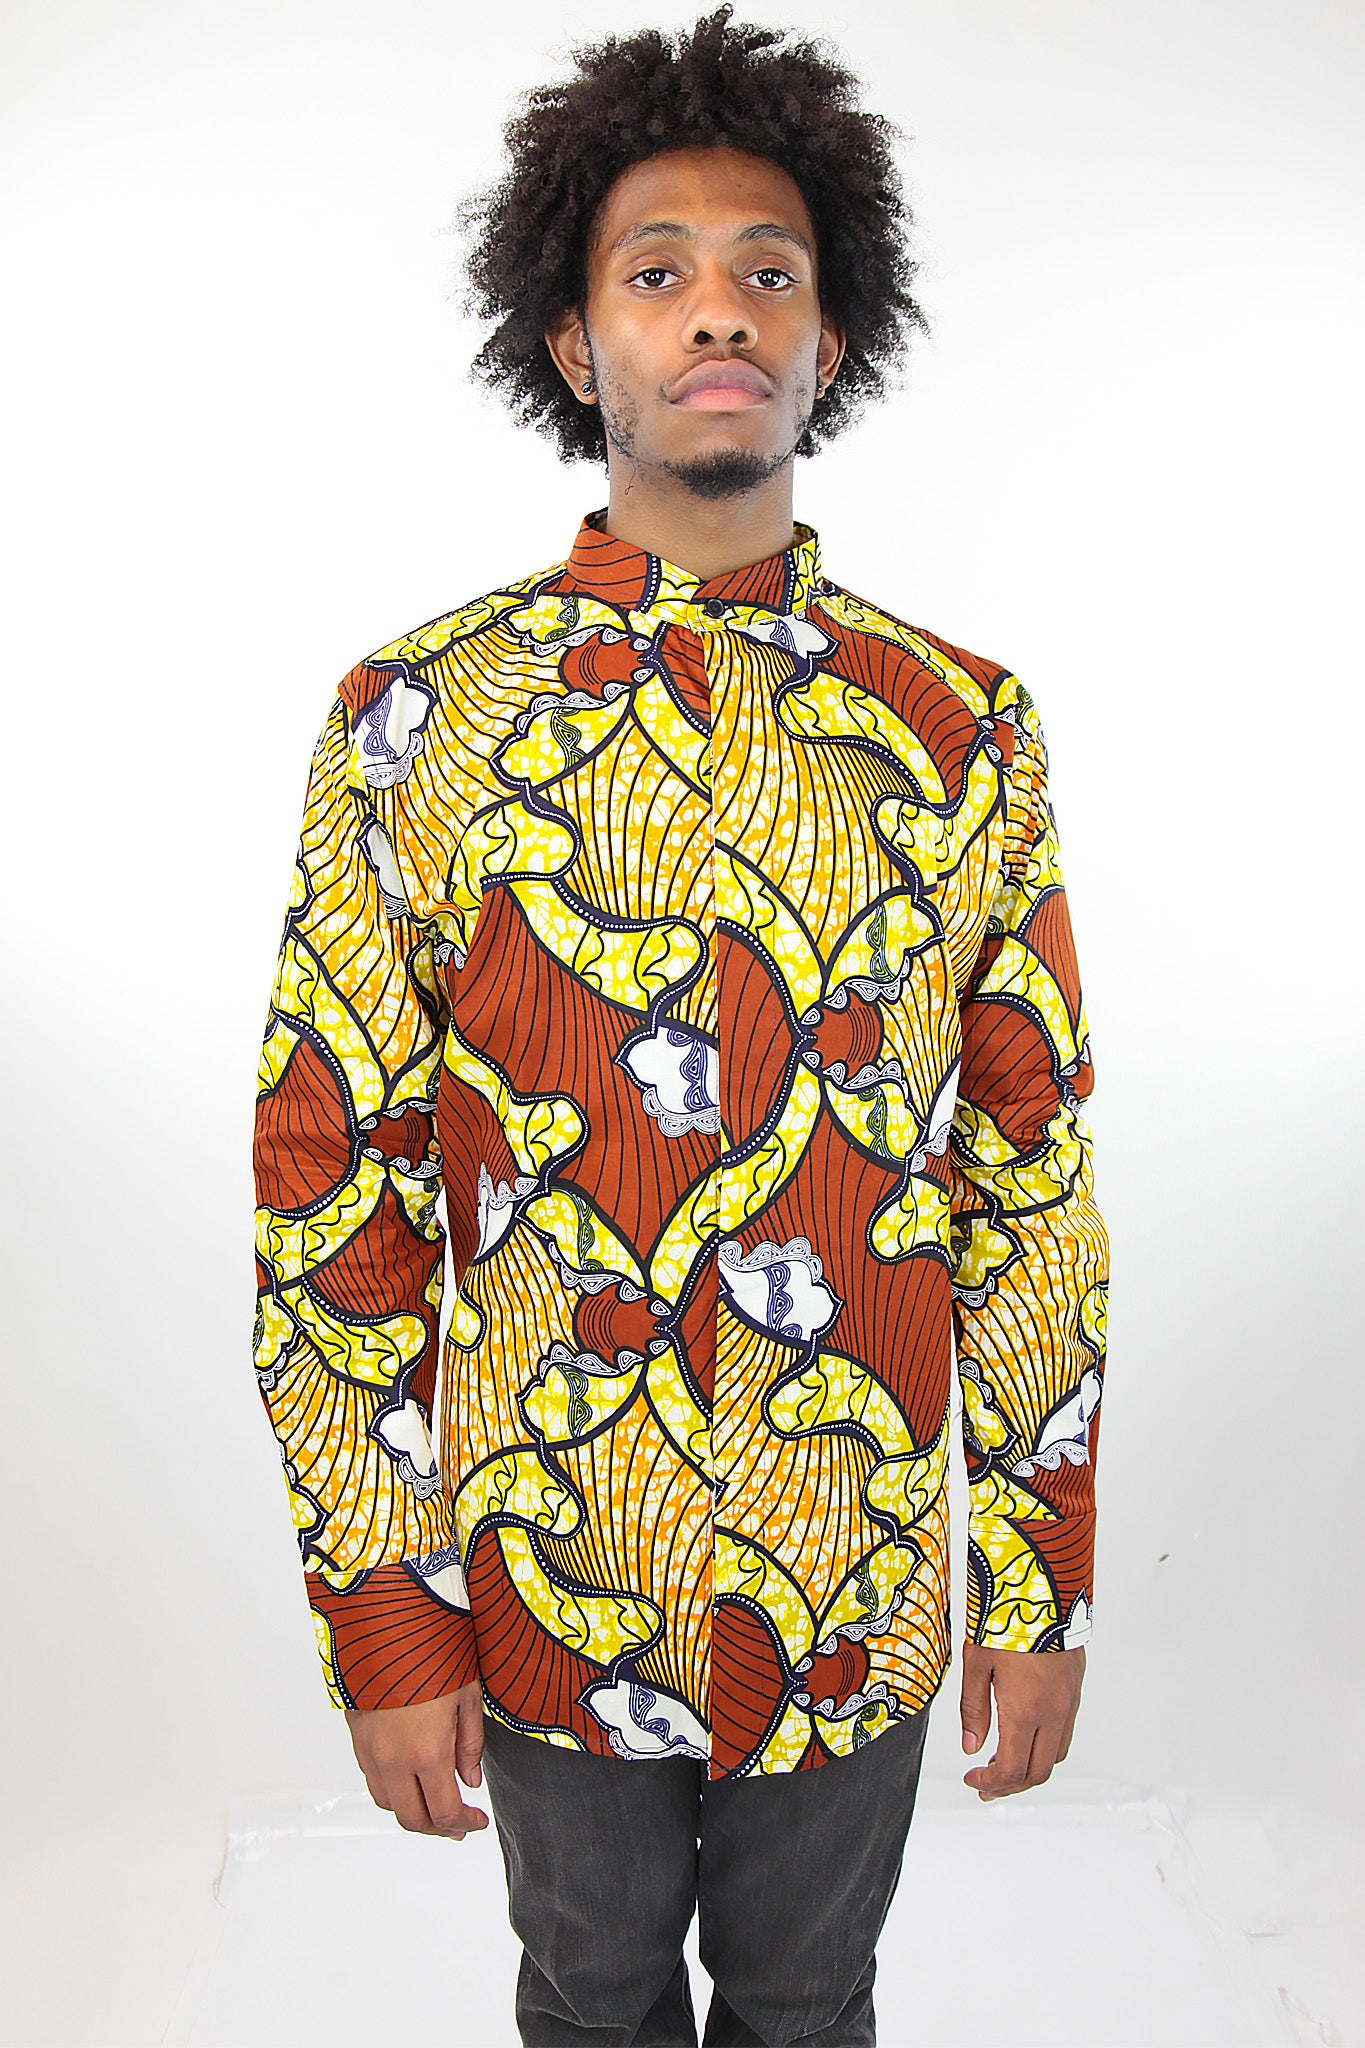 African Print Mens Shirt Button-Up Shirt Orange and Yellow Waves - Africas Closet